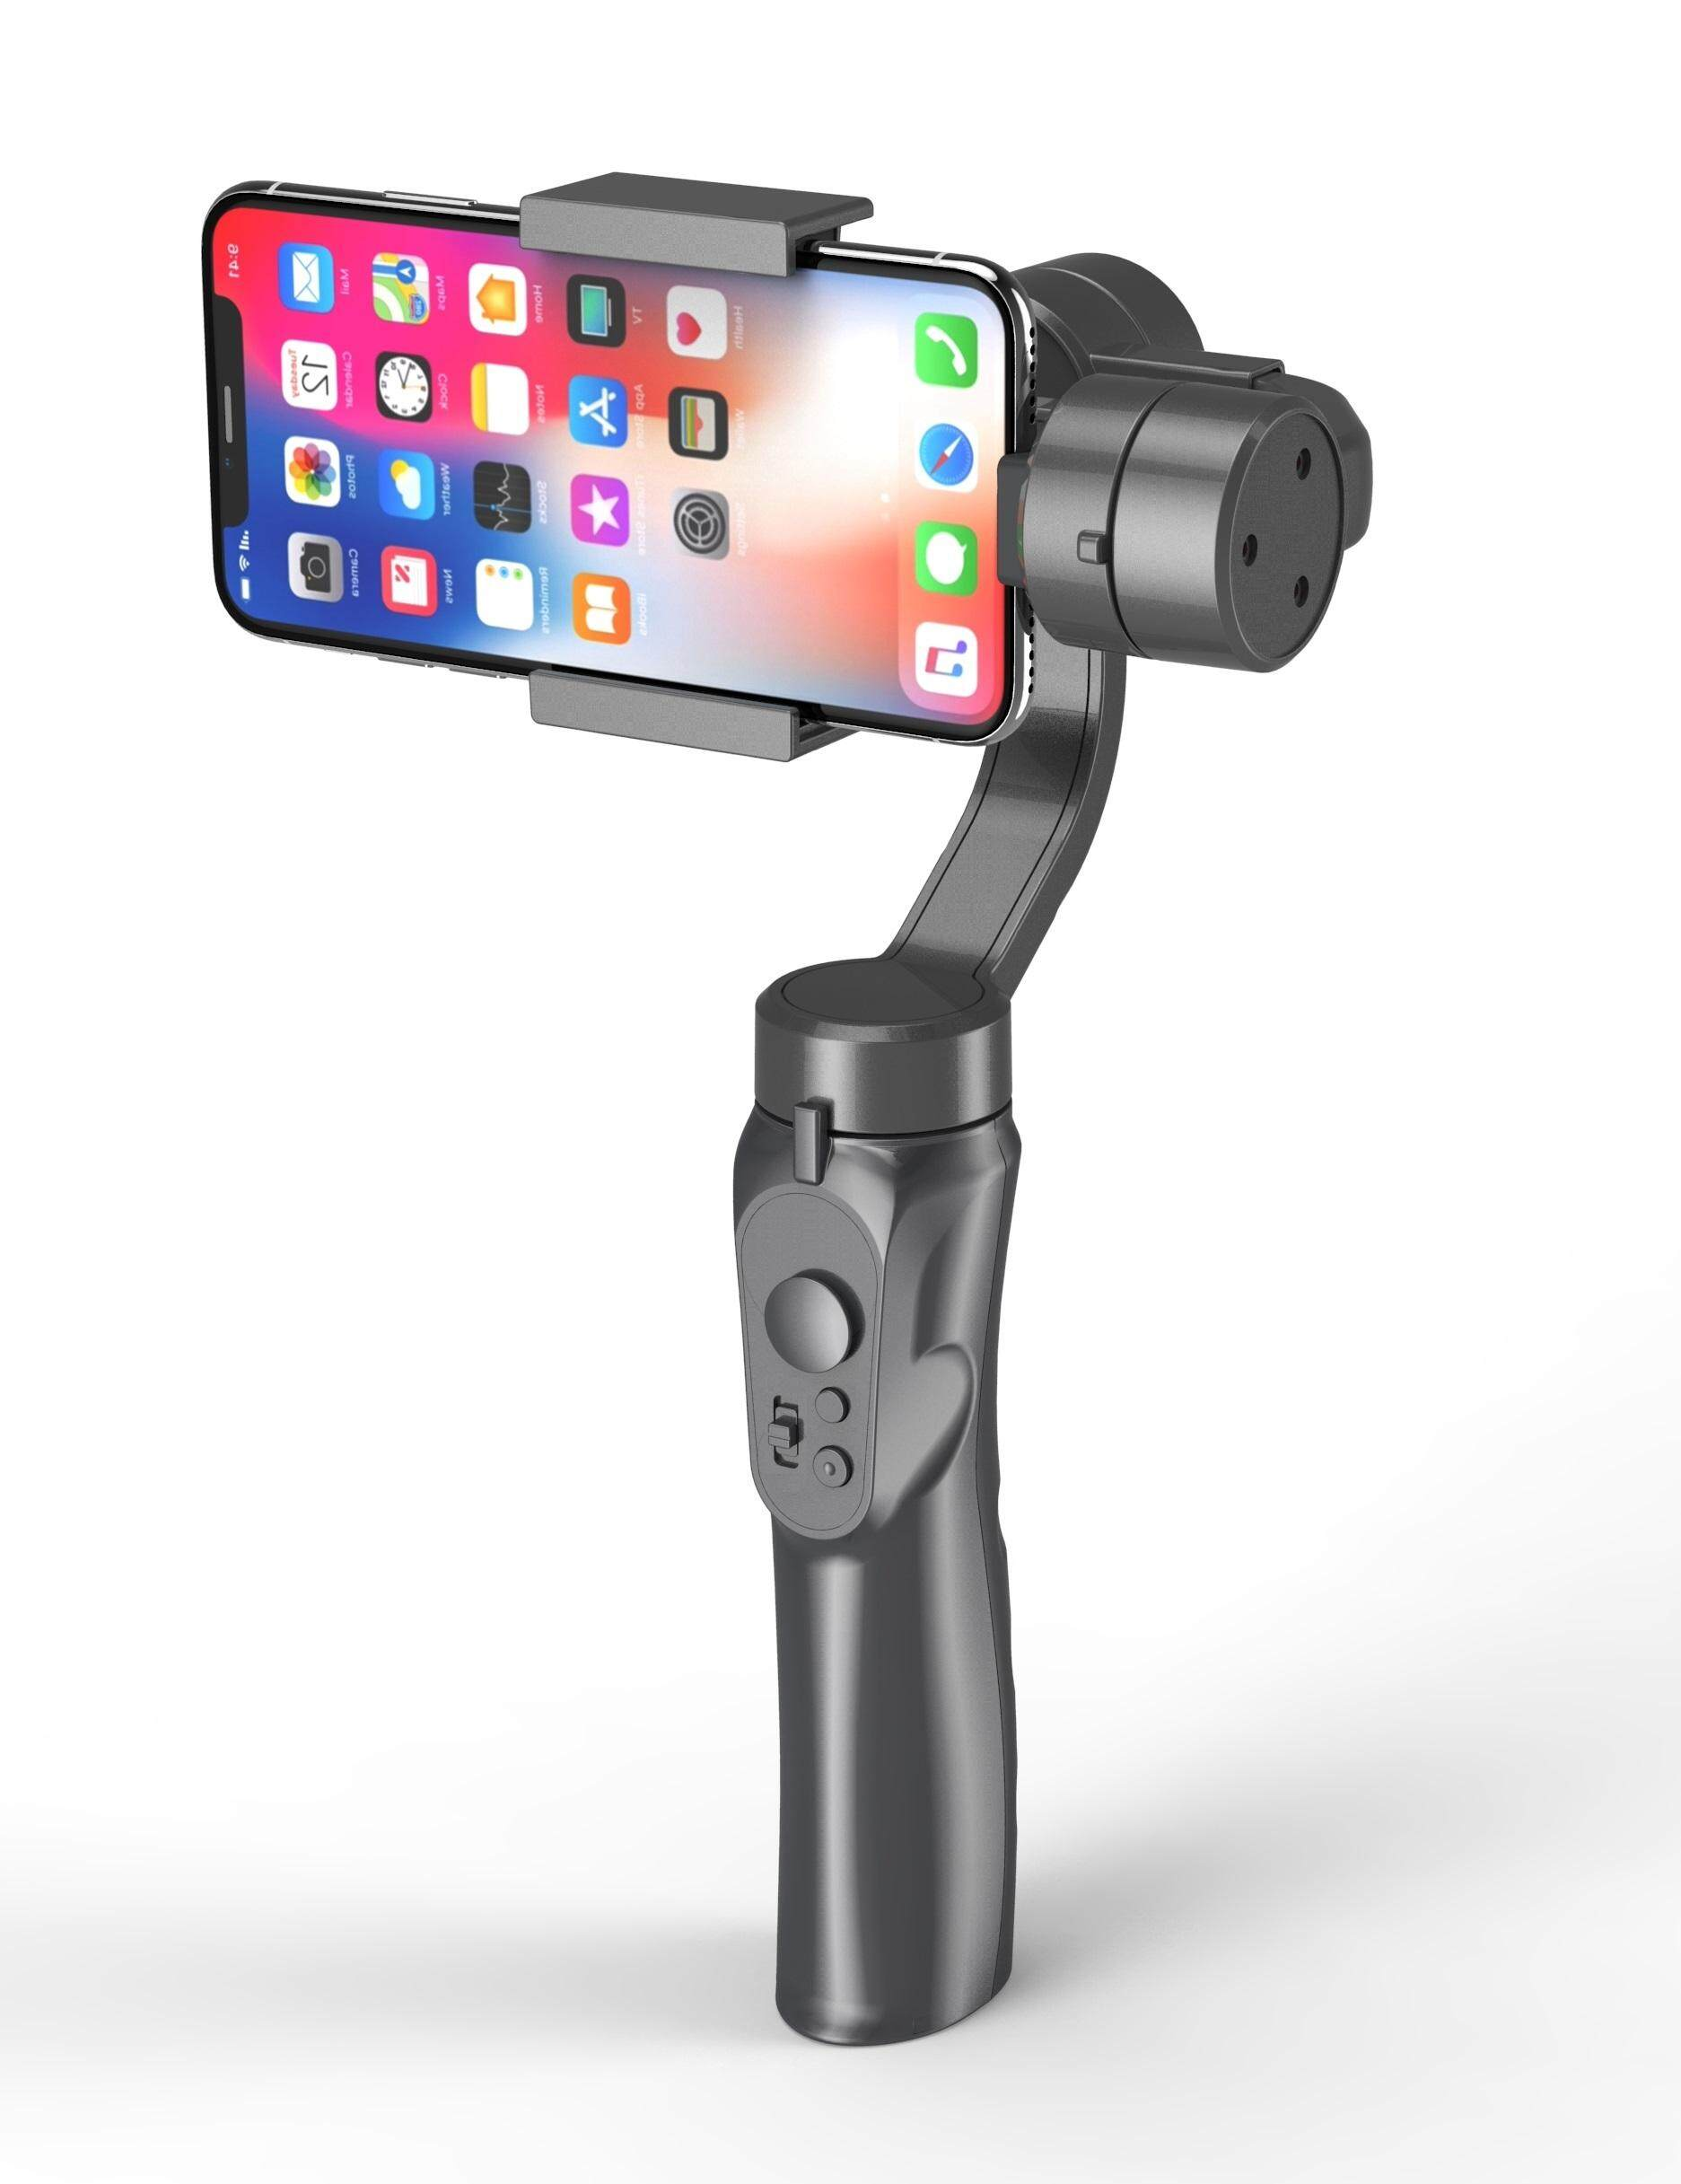 3-Axis Handheld Smartphone Gimbal Stabilizer for iPhone X 8Plus 8 7 Android  Sports Cameras